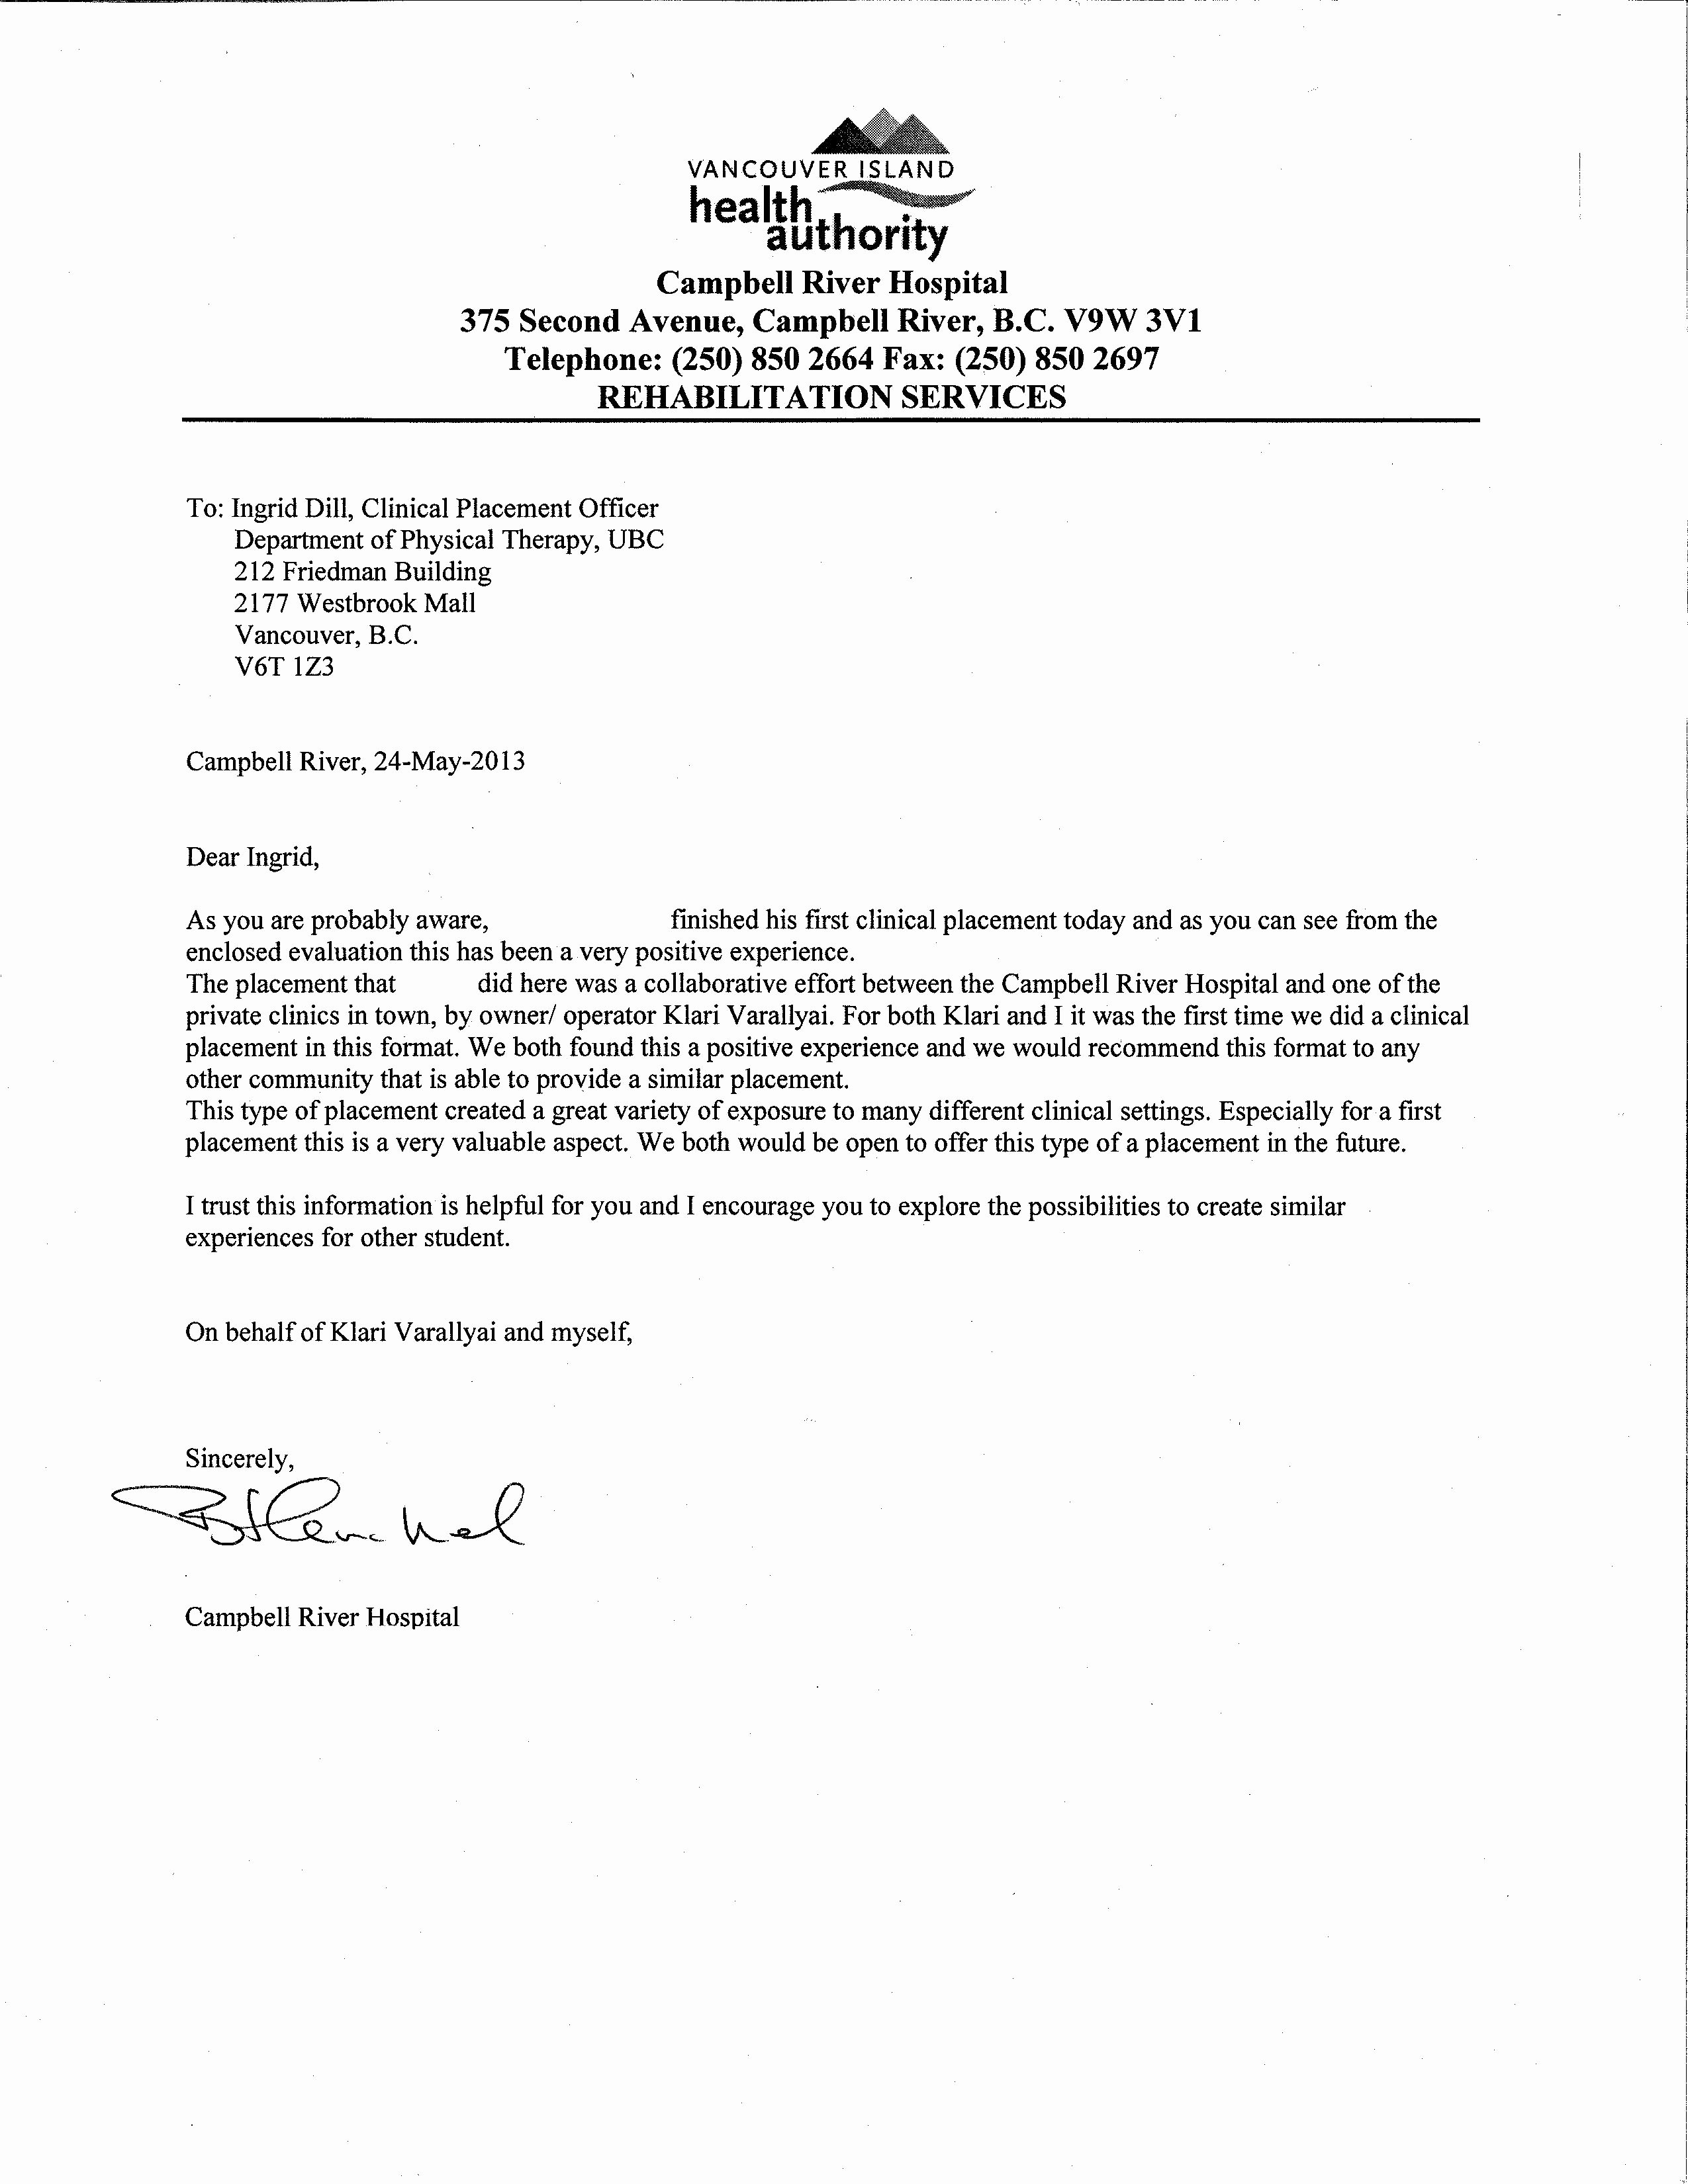 Physical therapy Letter Of Recommendation Awesome Letter Re Mendation for Physical therapy School